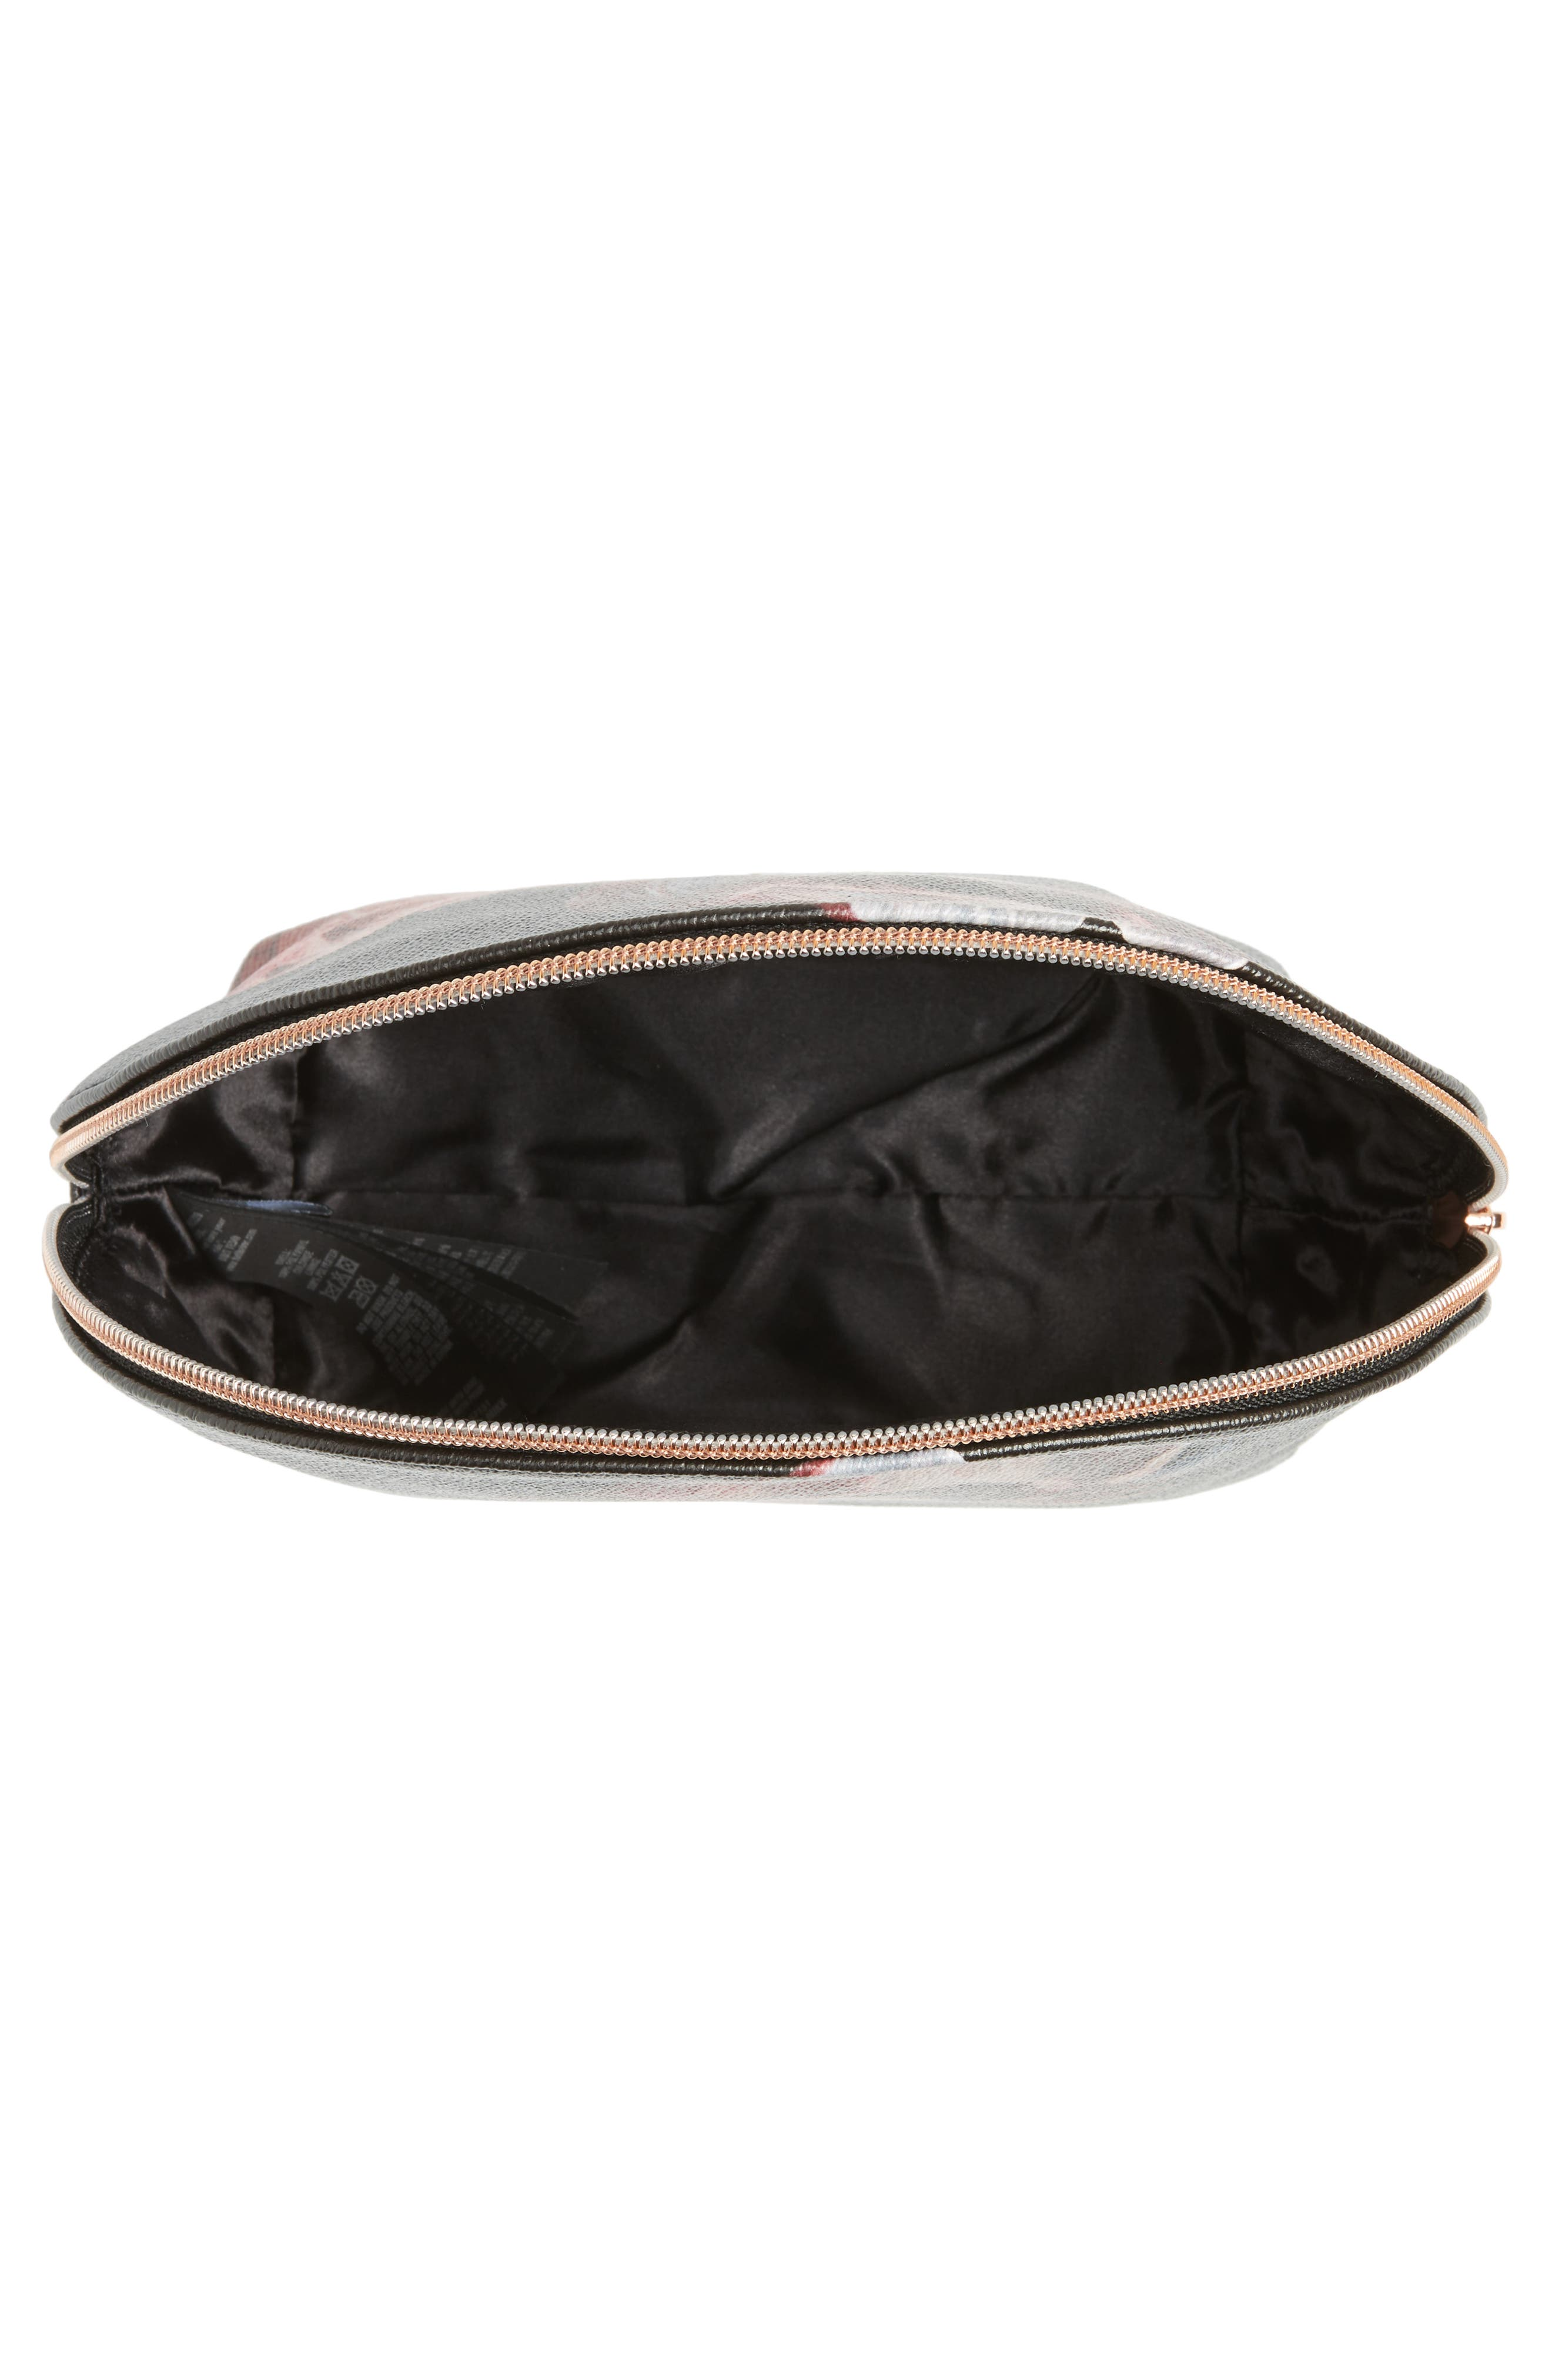 Tranquility Cosmetics Case,                             Alternate thumbnail 3, color,                             Black